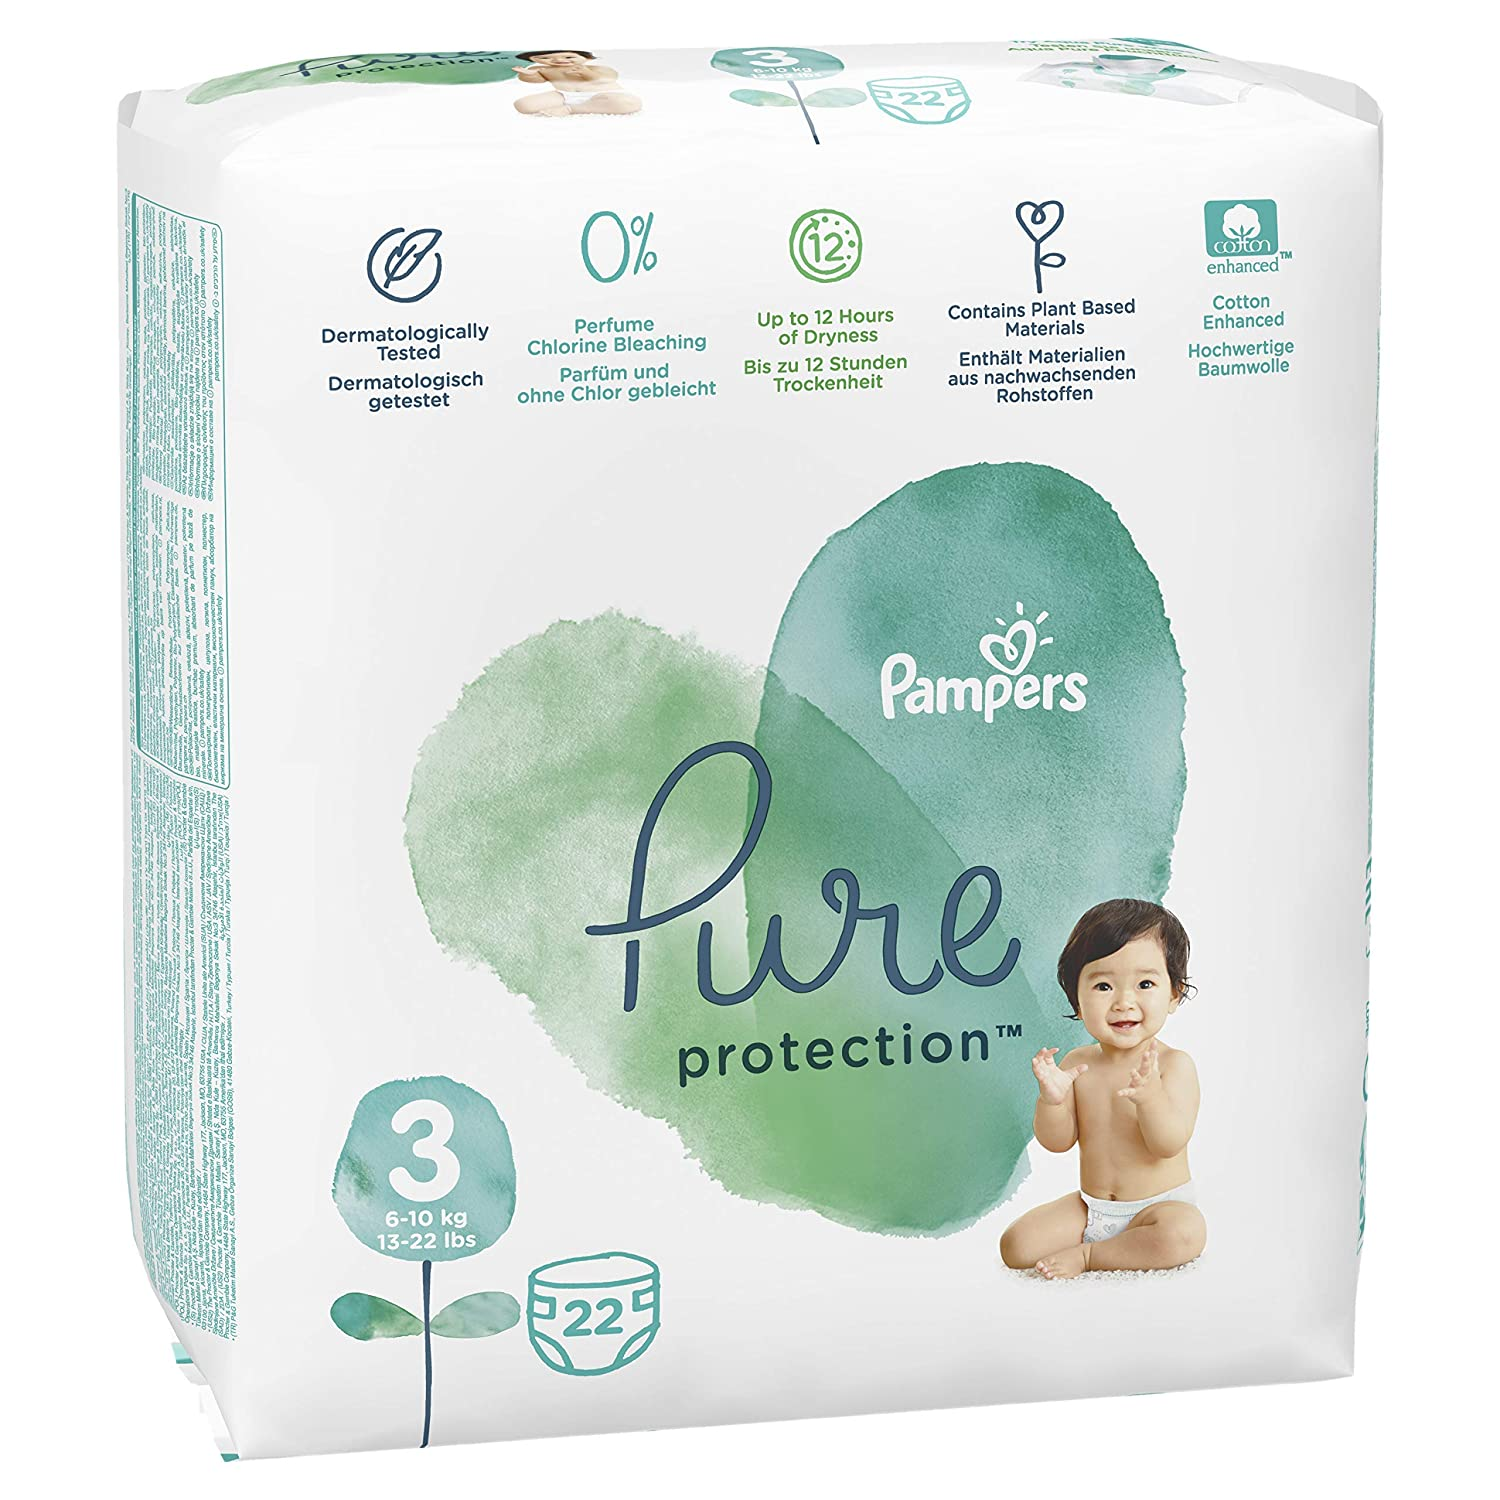 Pampers Pure Protection Gr 19 Stück 4 Maxi 9-14 kg Tragepack